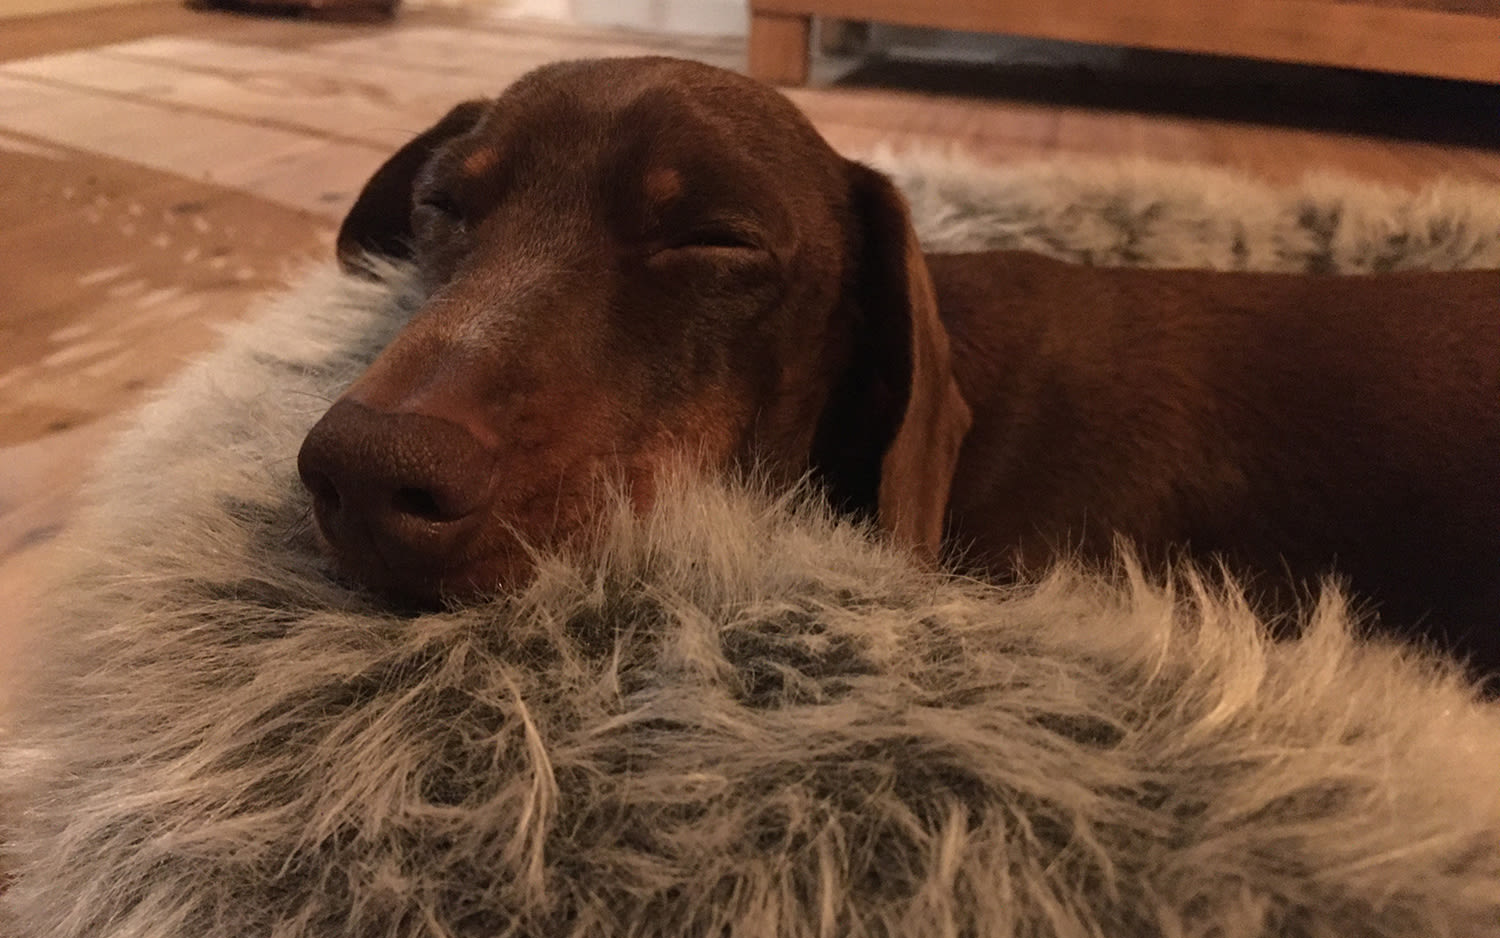 Pipsqueak, the daschund, sleeping in a fluffy dog bed